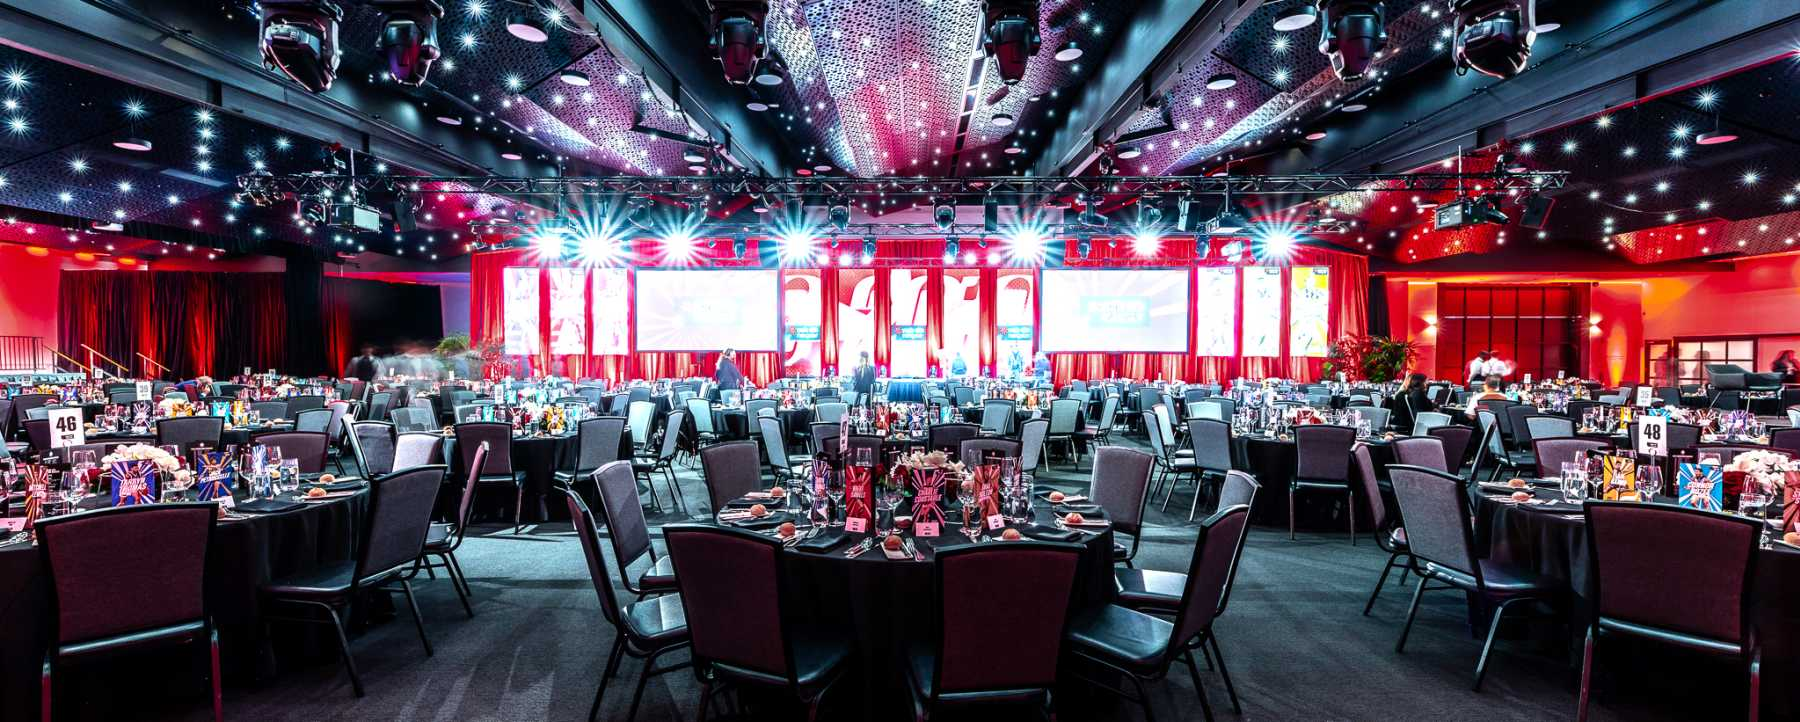 NAB Rising Star Awards - room theming